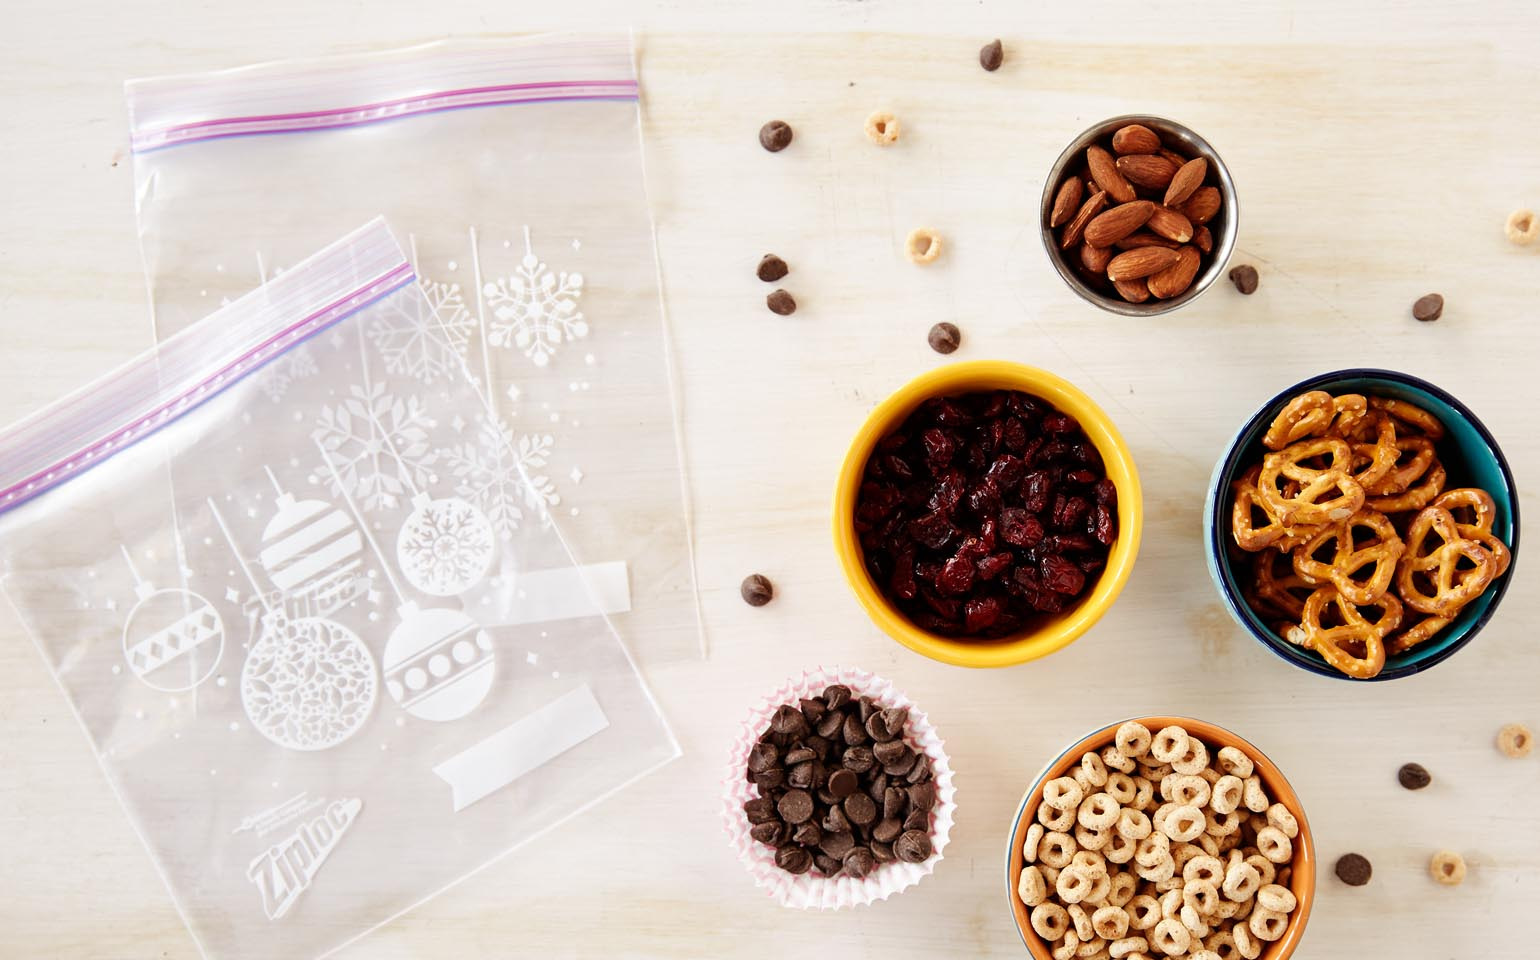 Shake-It-To-Make-It-Crafts-Recipes-Ziploc-Brand